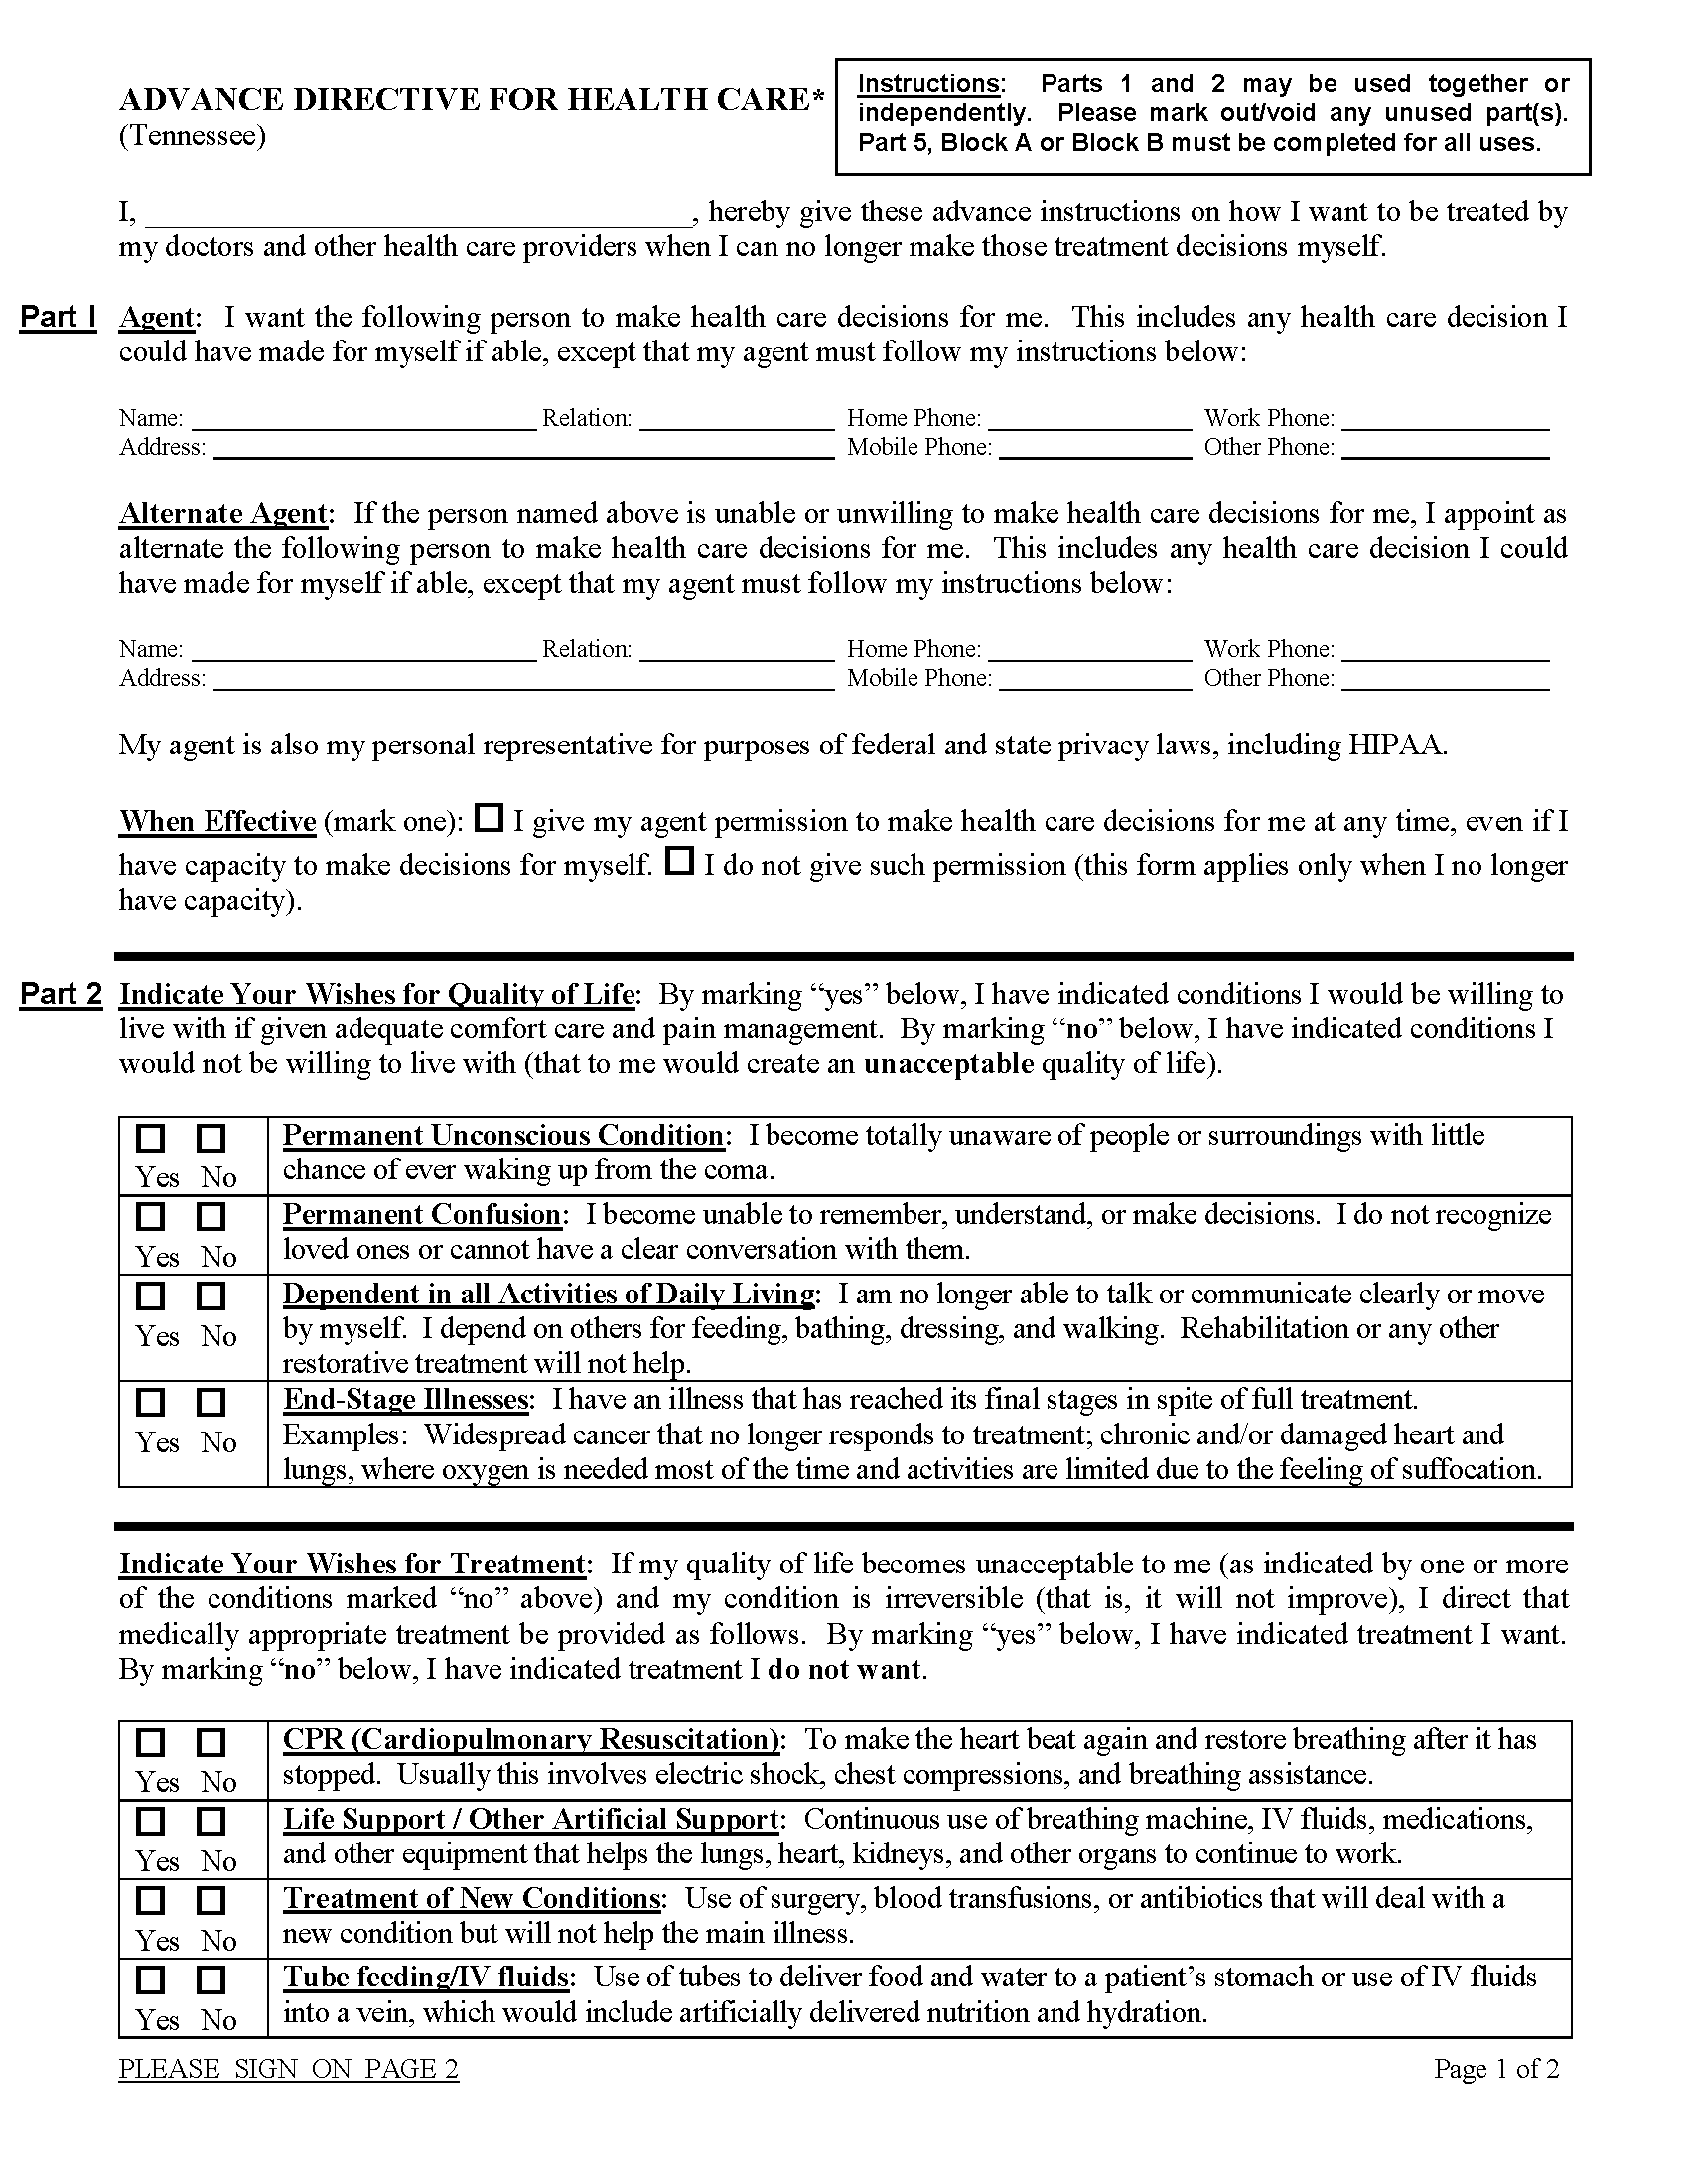 Tennessee Living Will Form Free Printable Legal Forms